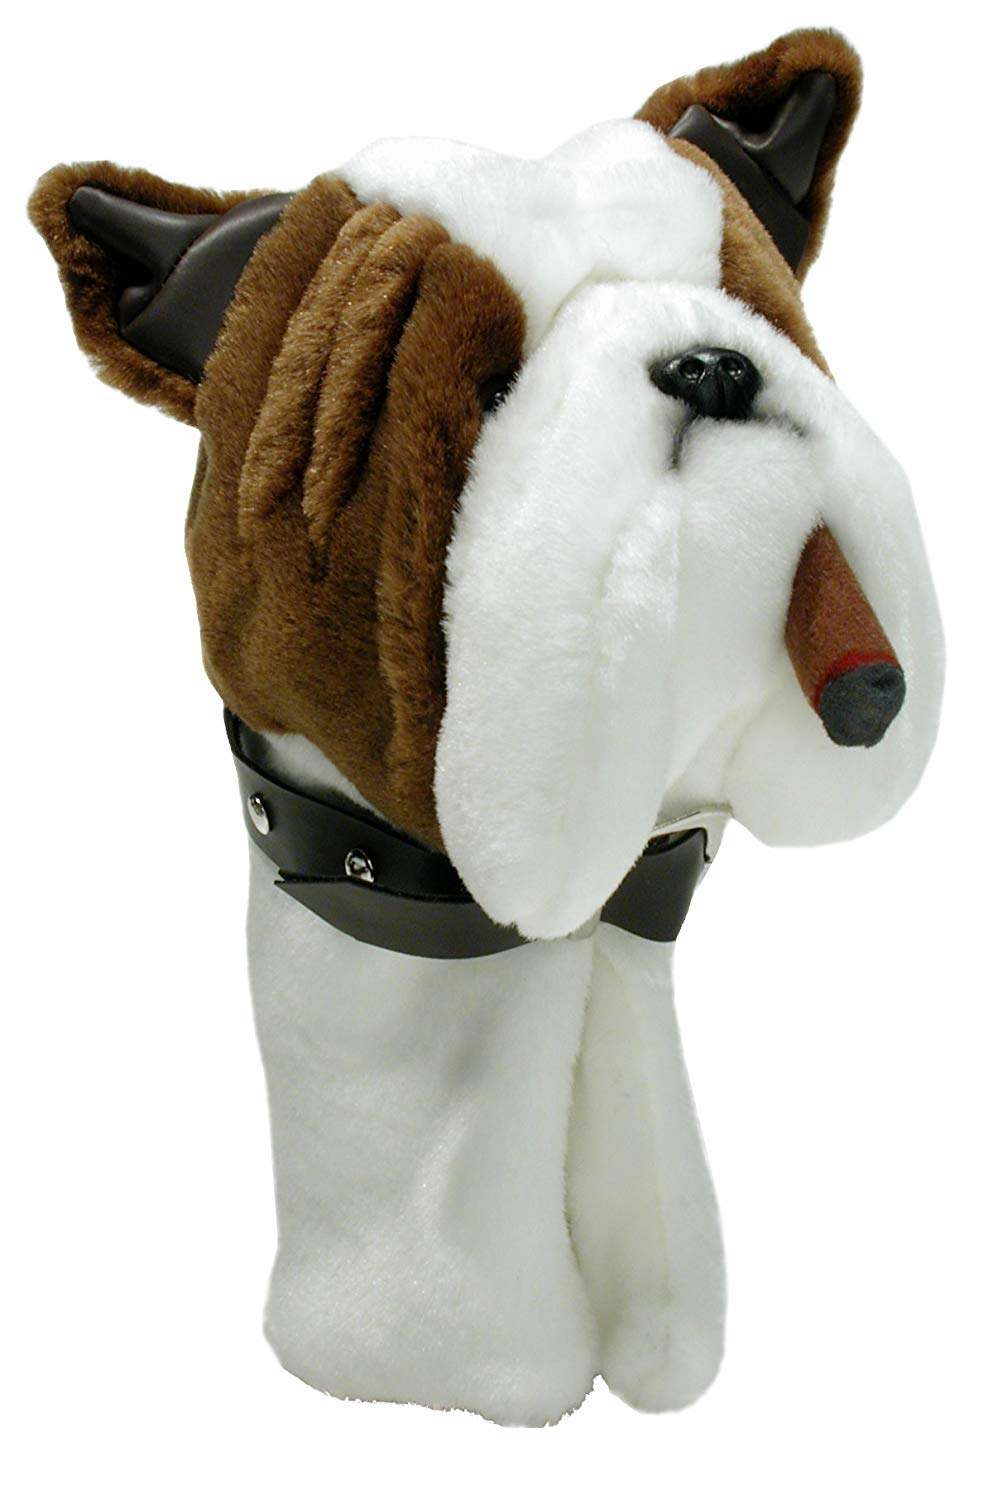 Amazon.com: Verxii Home Golf Club Head Cover Cover for Golf ...